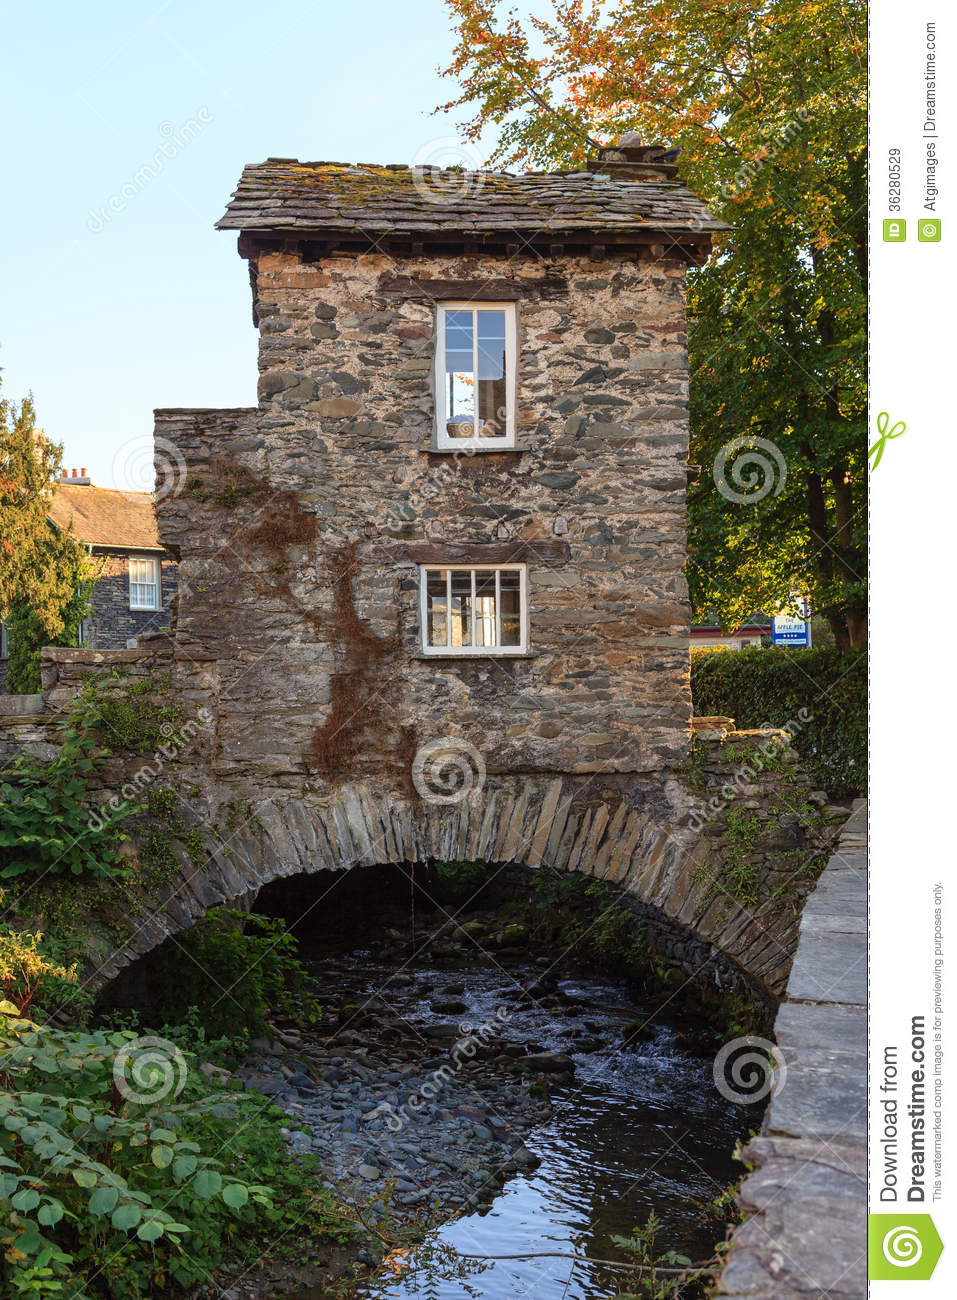 Royalty Free Stock Images Ambleside Bridge House Th Century Old Stone Cottage Perched Over Stock Beck Cumbria English Lake District Pictured Image36280529 on Small English Cottage House Plans